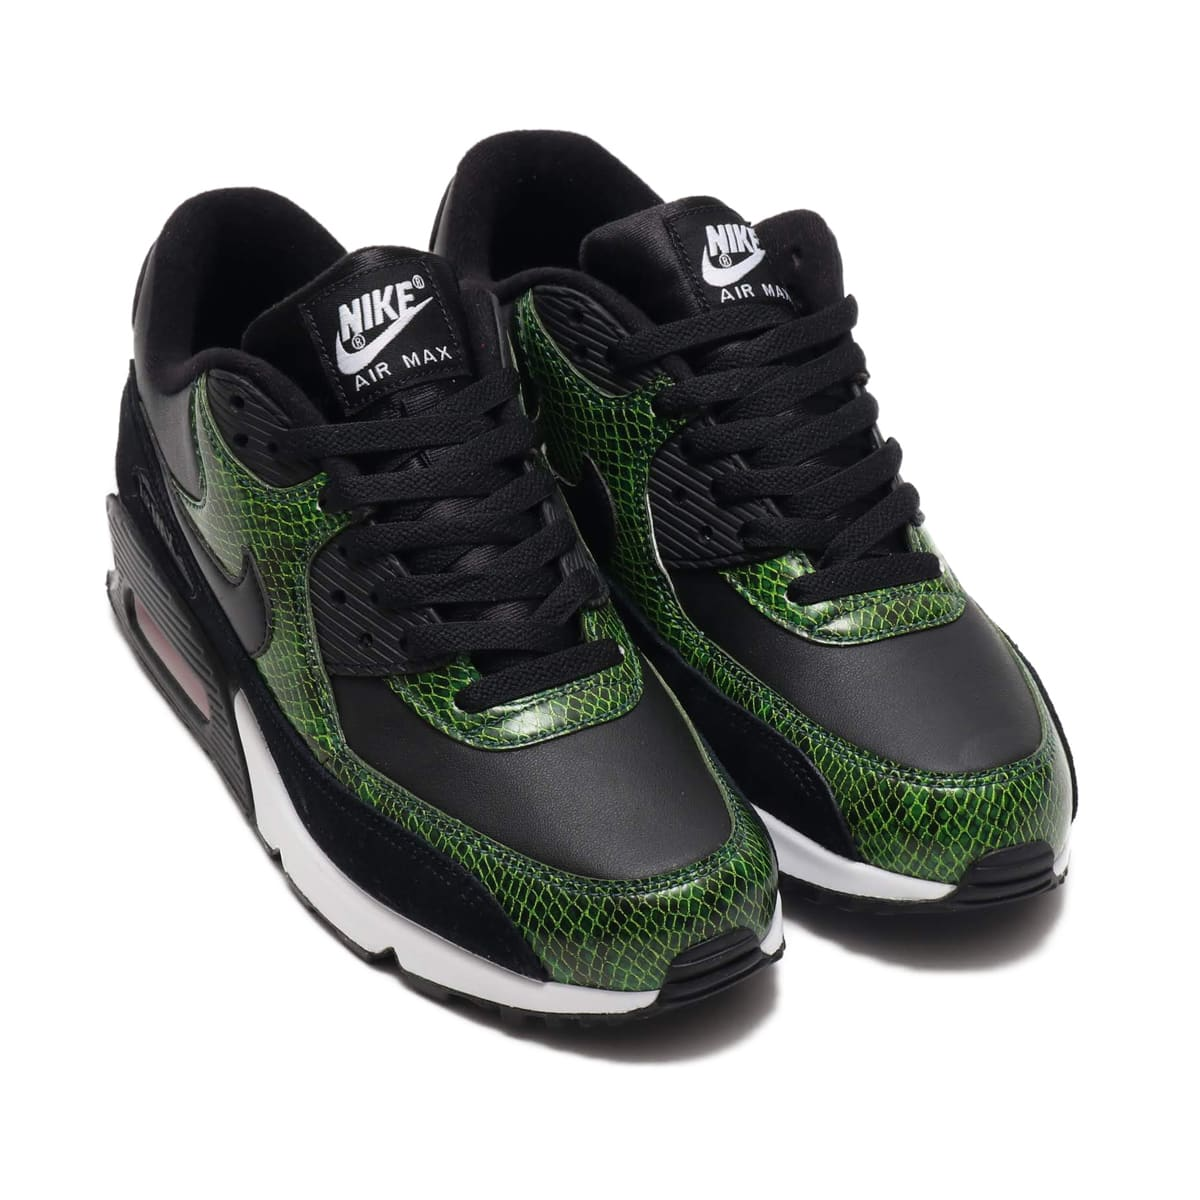 NIKE AIR MAX 90 QS BLACK/BLACK-CYBER-FIR 19SU-S_photo_large